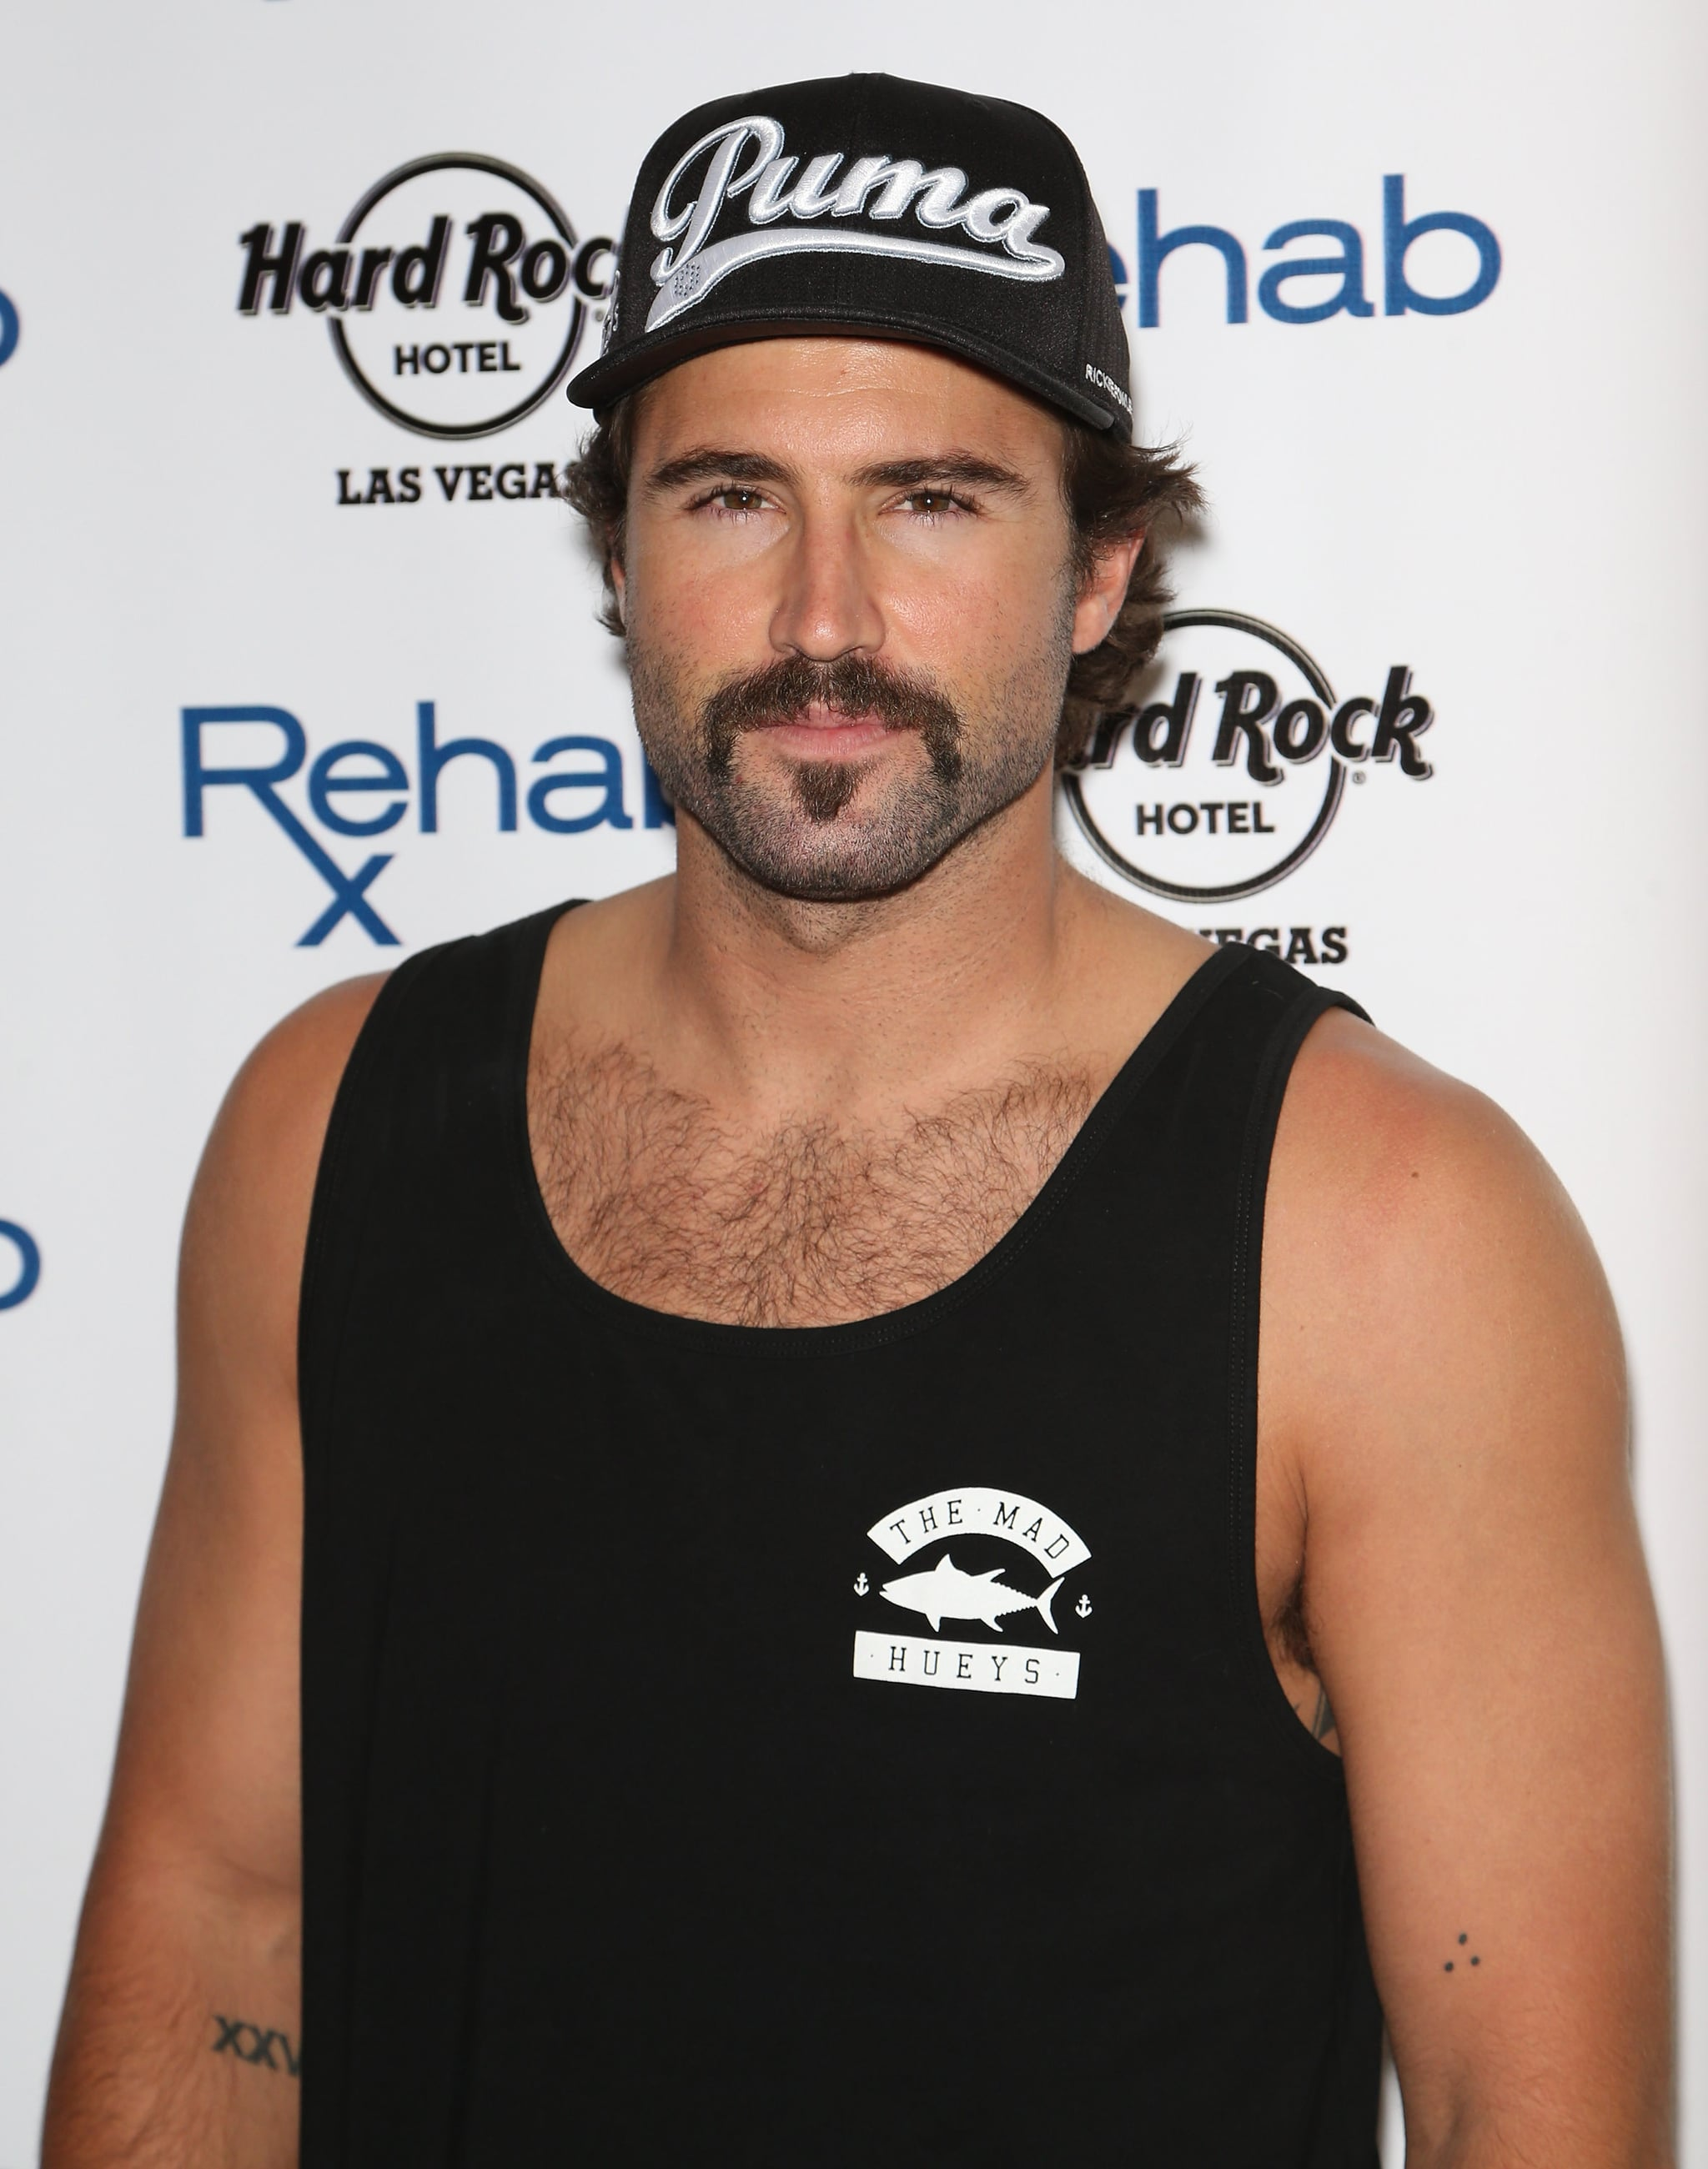 Brody Jenner sported a mustache and scruff at the Hard Rock Hotel and Casino's Rehab pool party on Saturday.